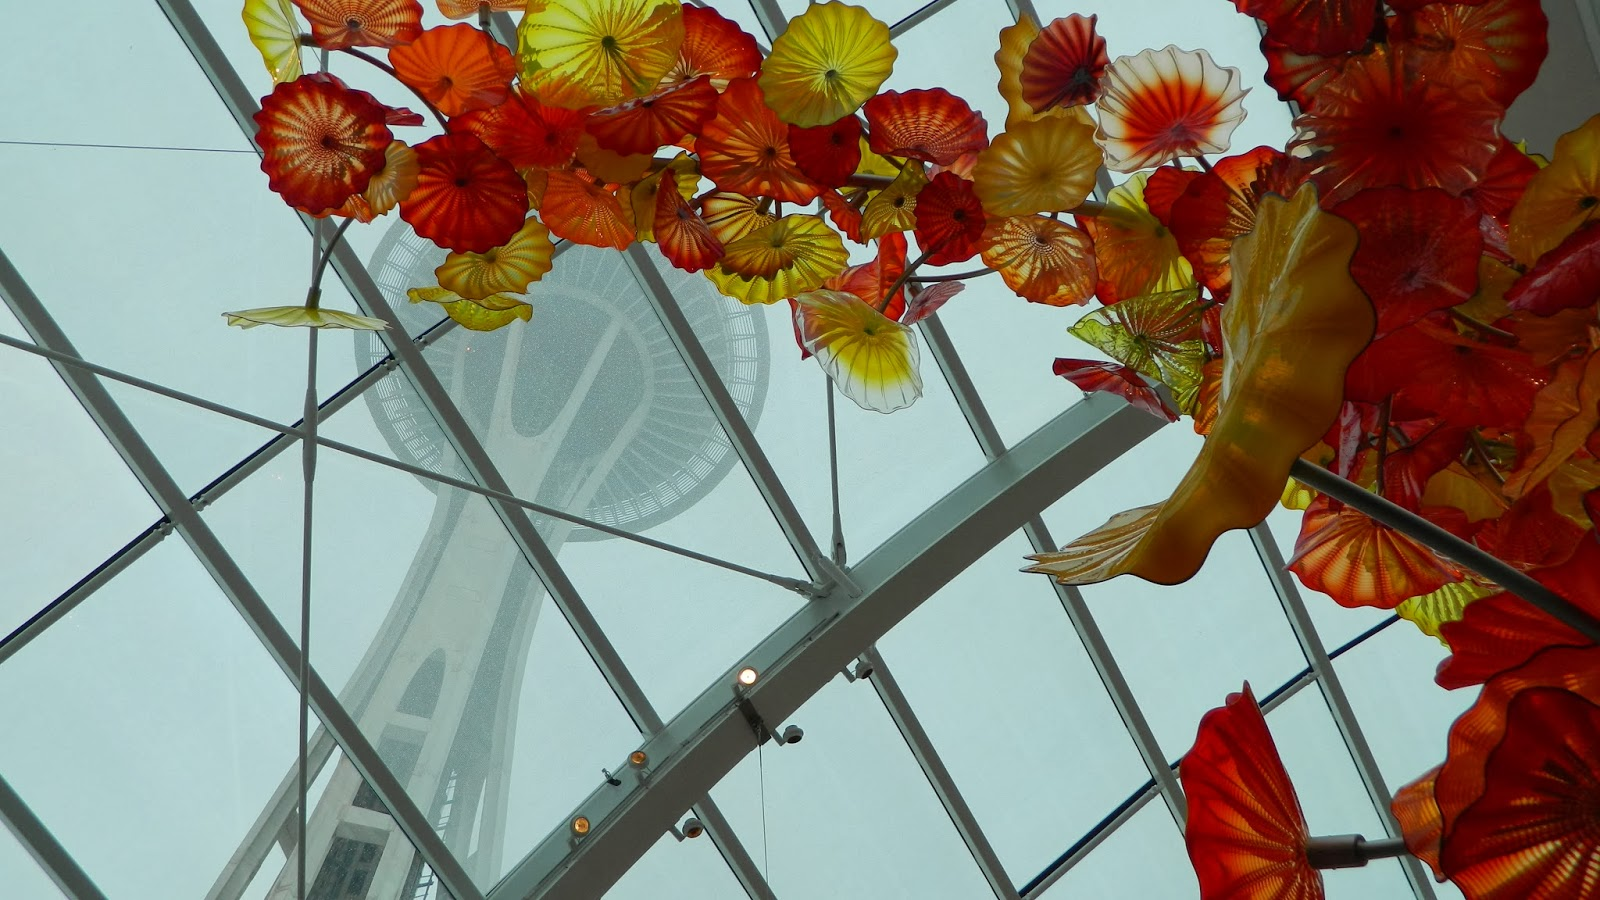 Gardenenvy Glassy Eyed In Seattle 39 S Chihuly Garden And Glass